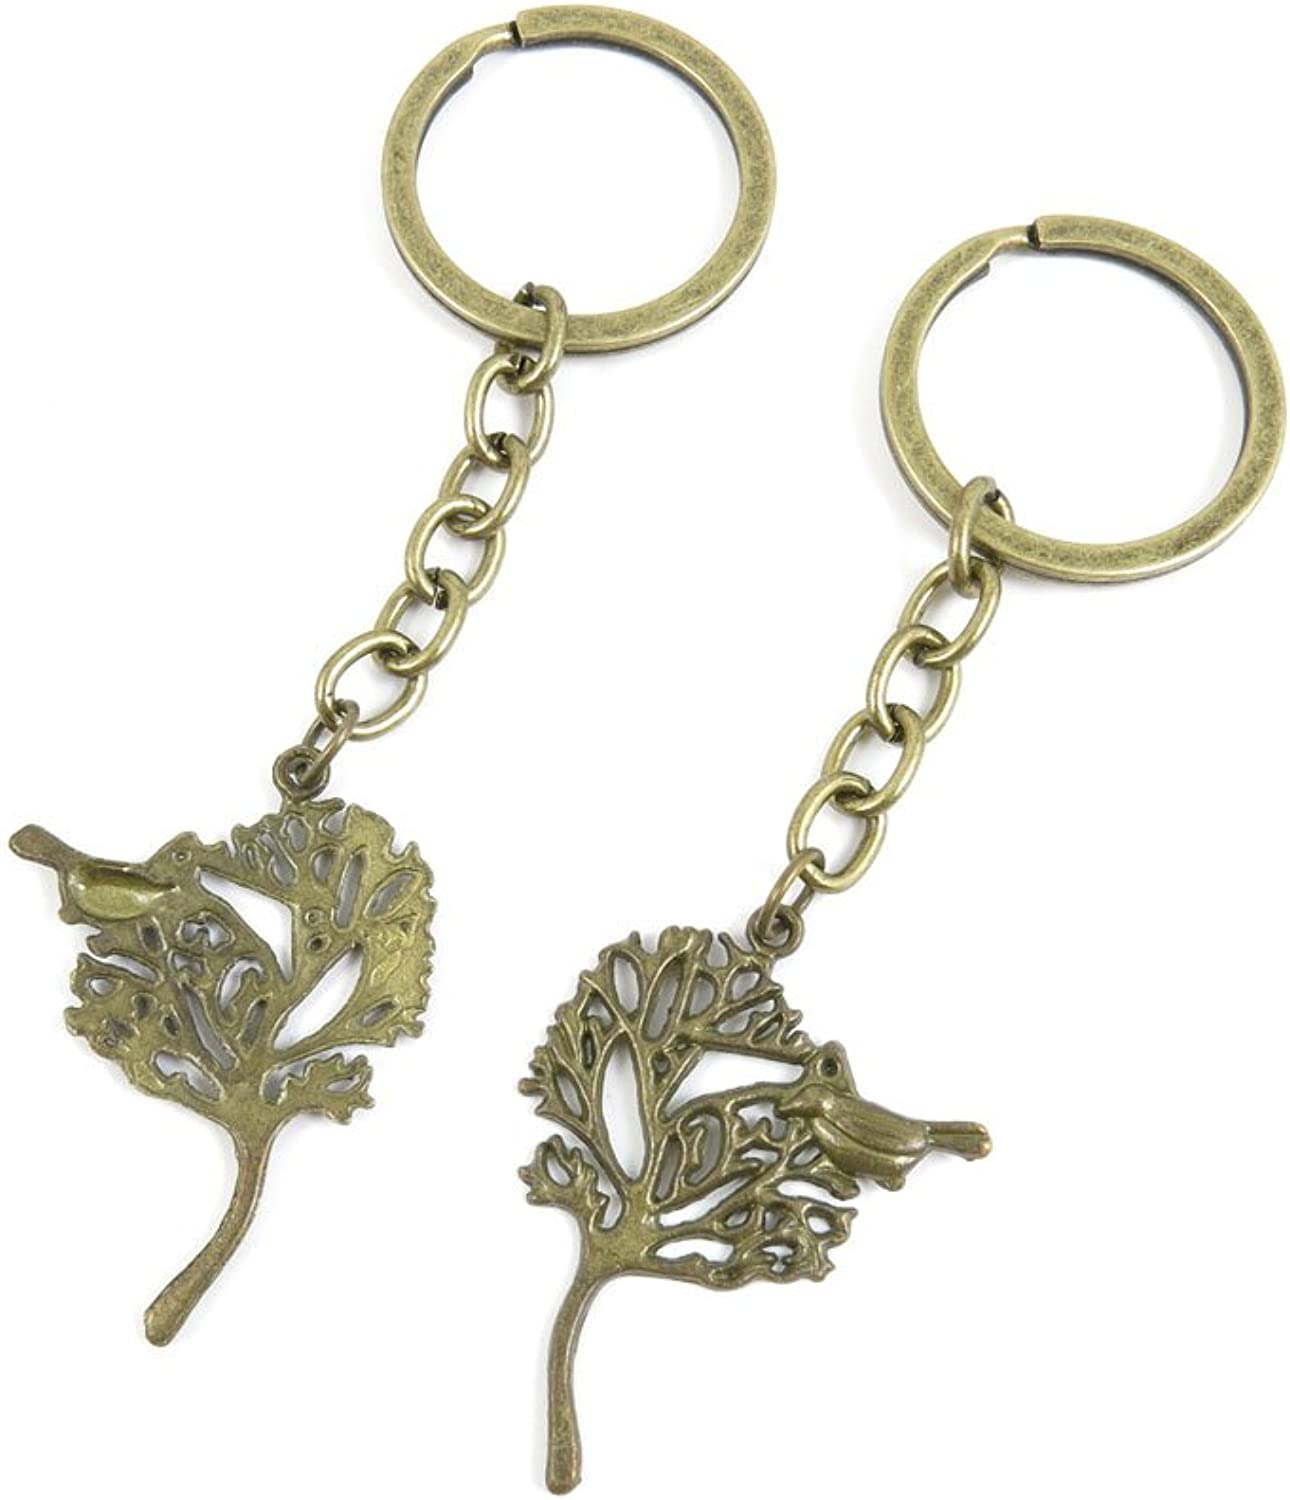 100 PCS Keyrings Keychains Key Ring Chains Tags Jewelry Findings Clasps Buckles Supplies C3MF5 Bird Tree